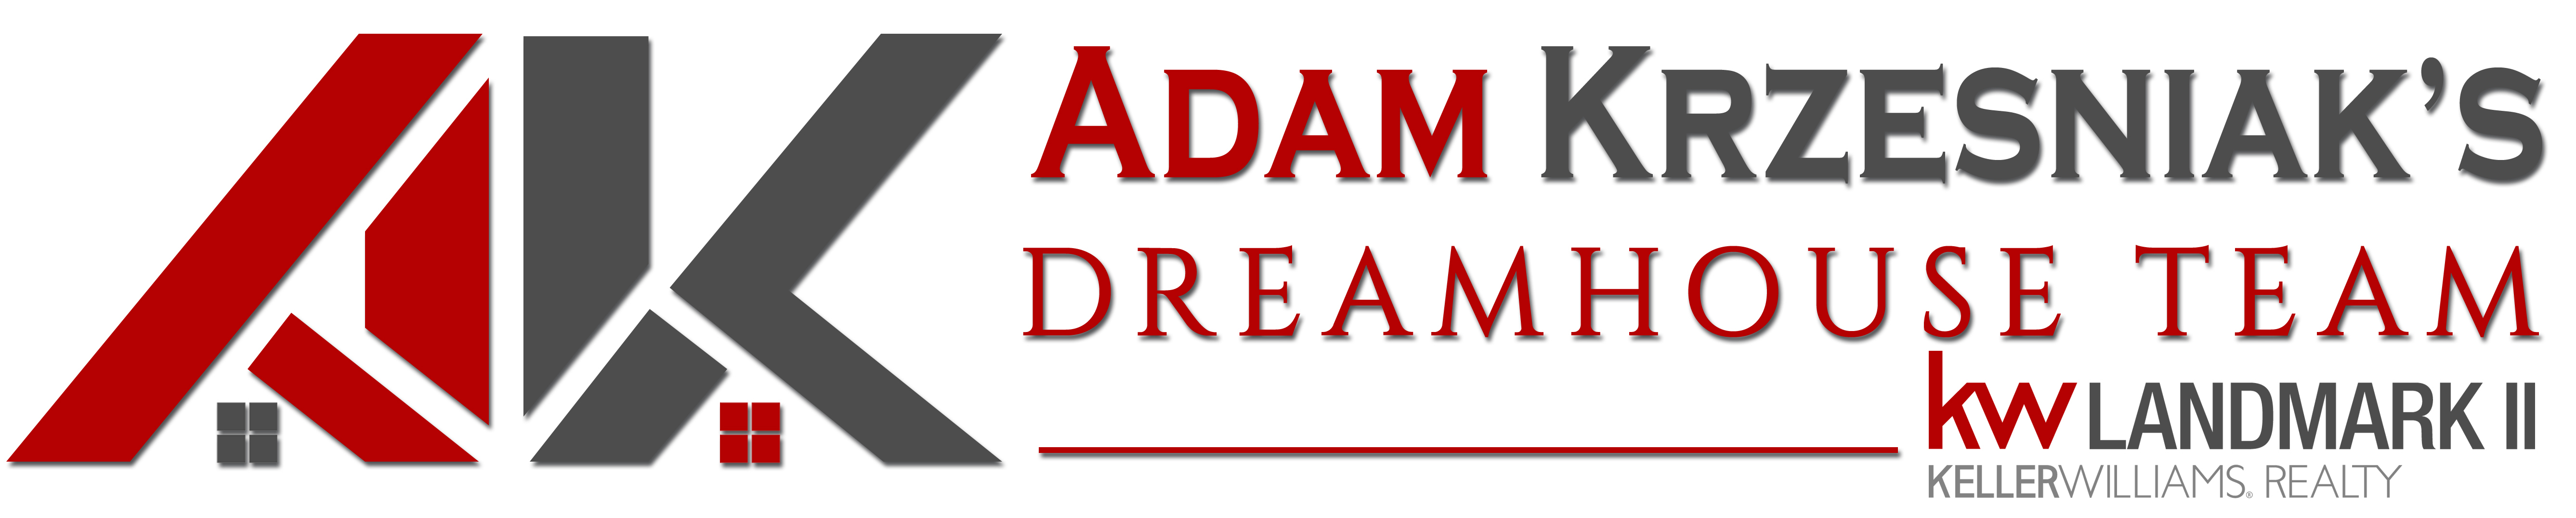 Adam Krzesniak's Dreamhouse Team